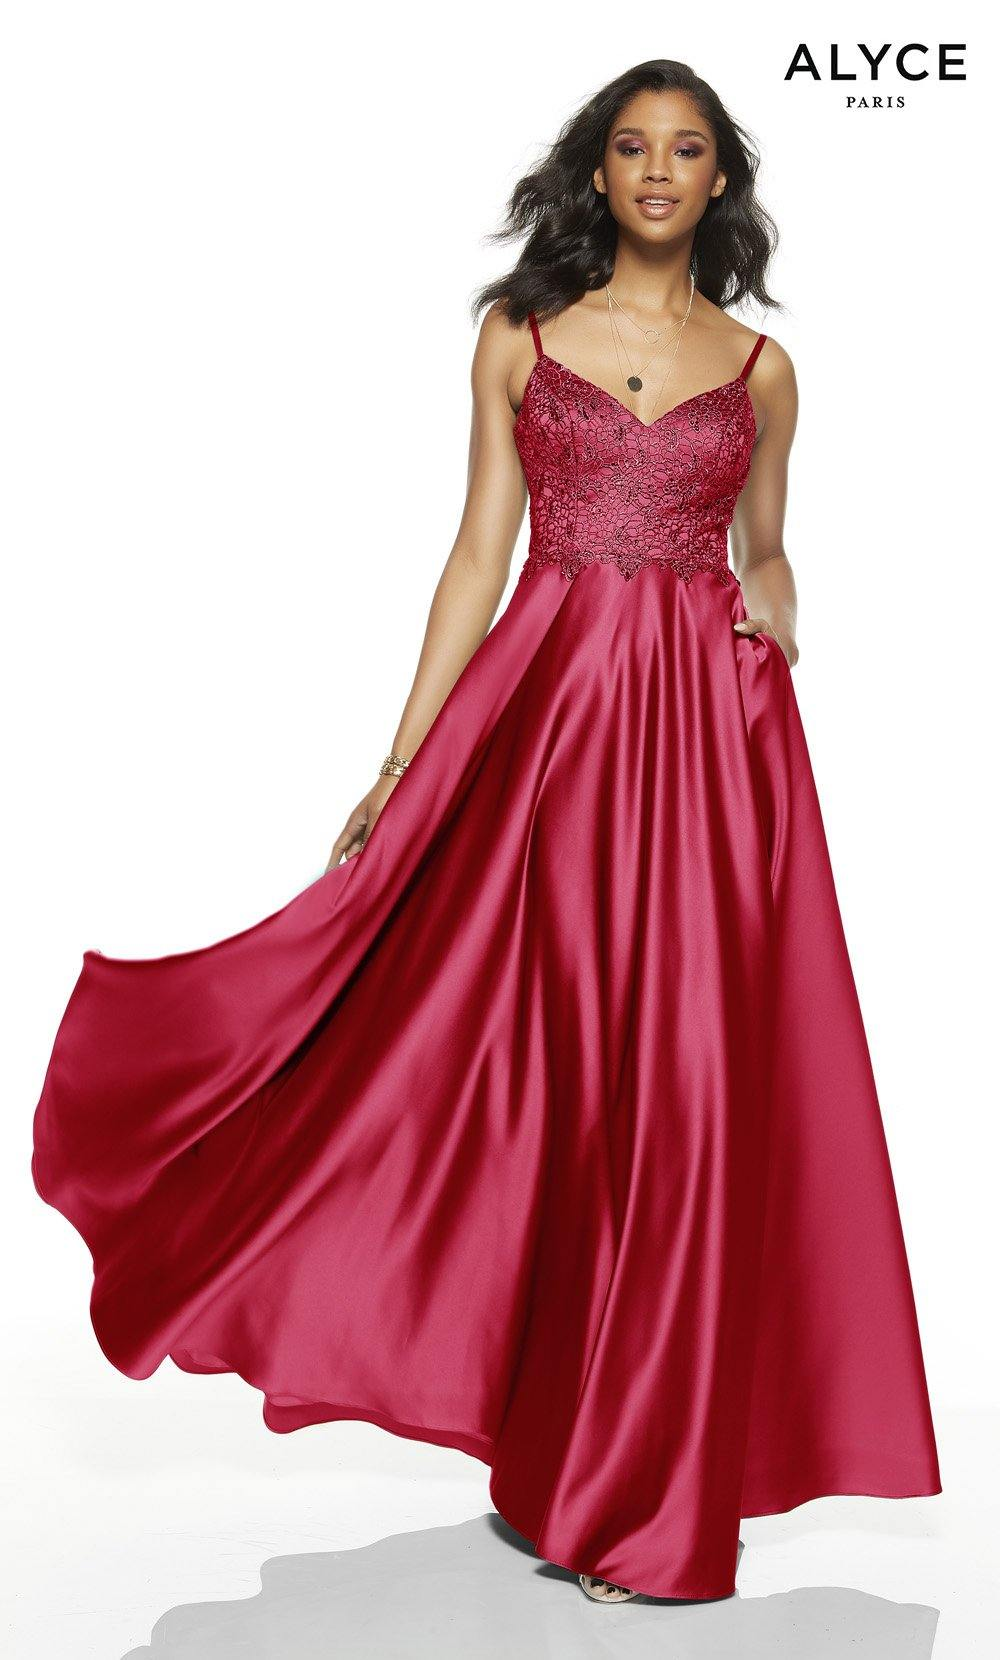 Red formal dress with a v-neckline and pockets